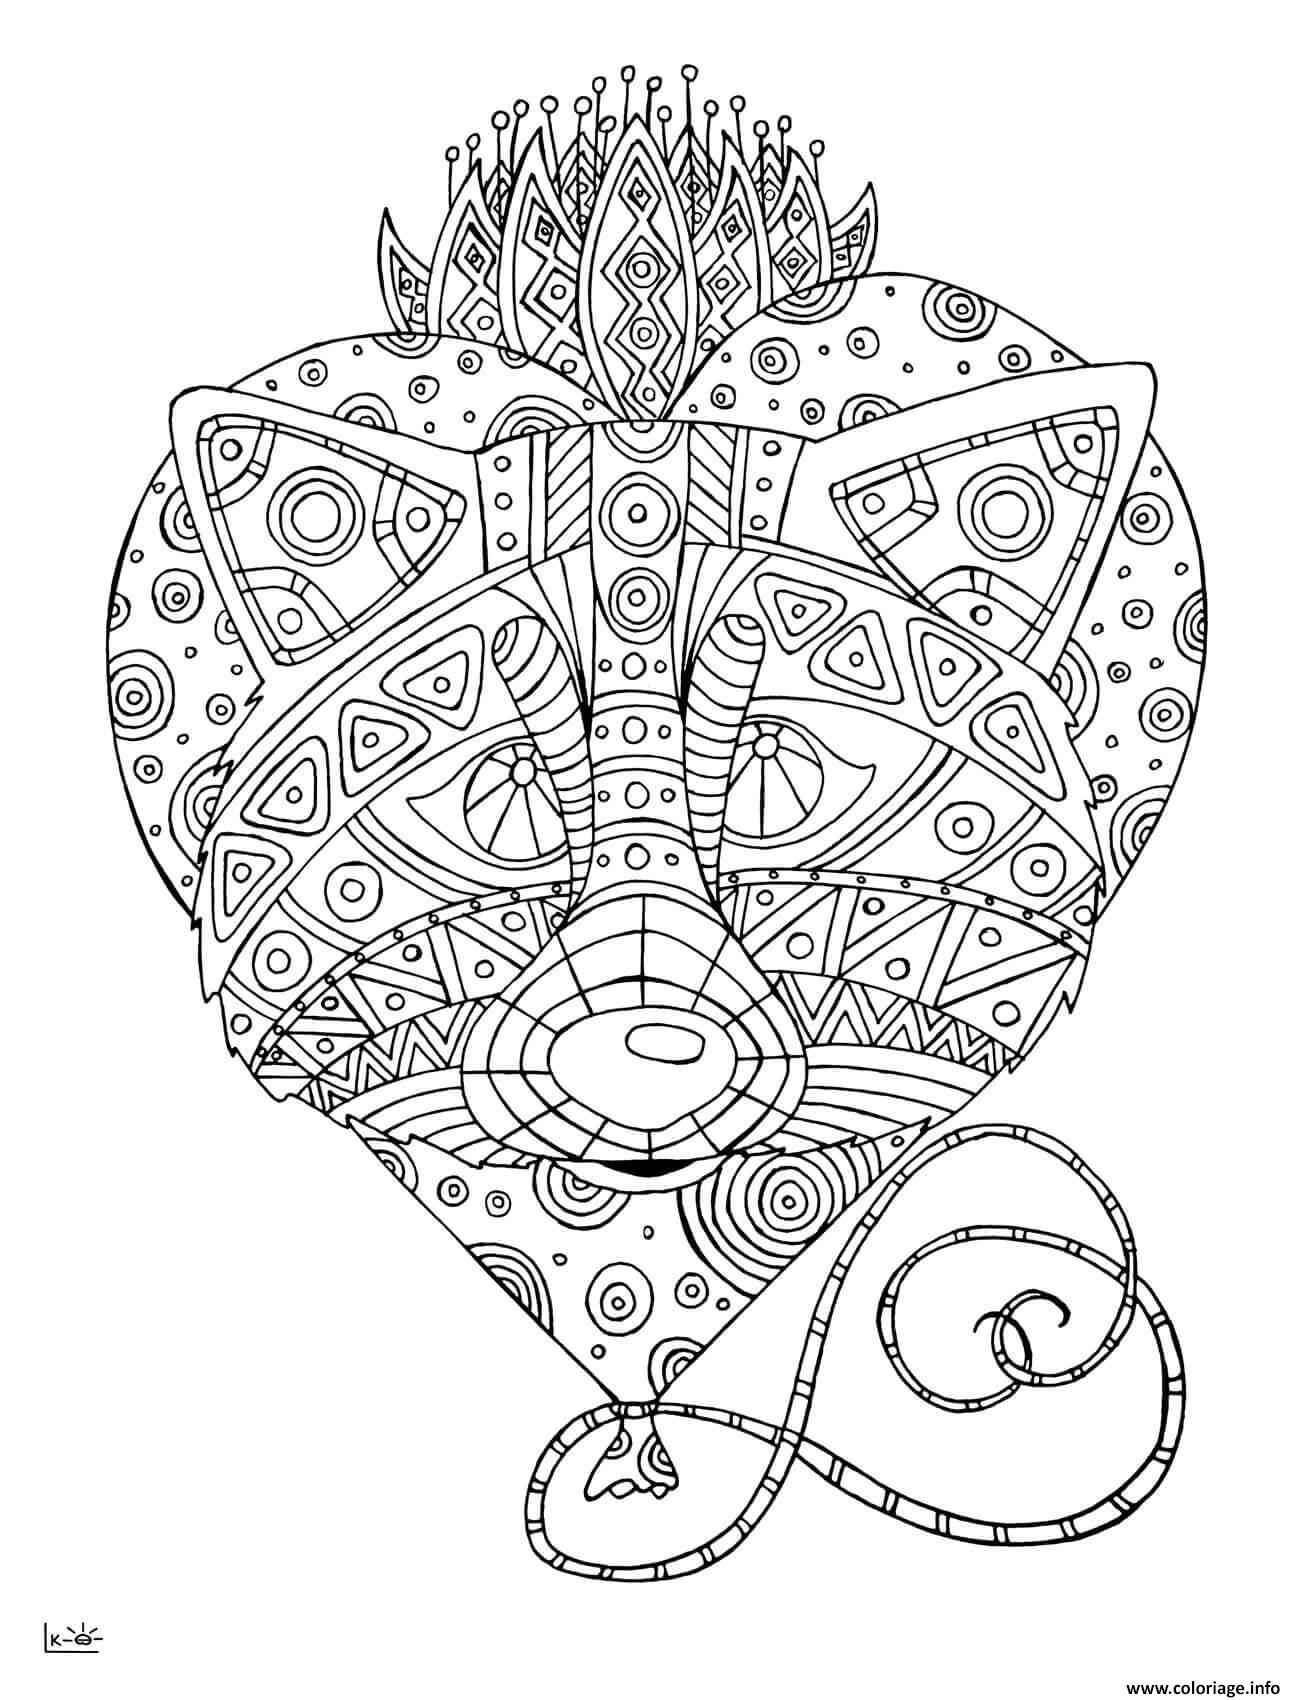 Coloriage Raccoon With Tribal Pattern Adulte Dessin à Imprimer